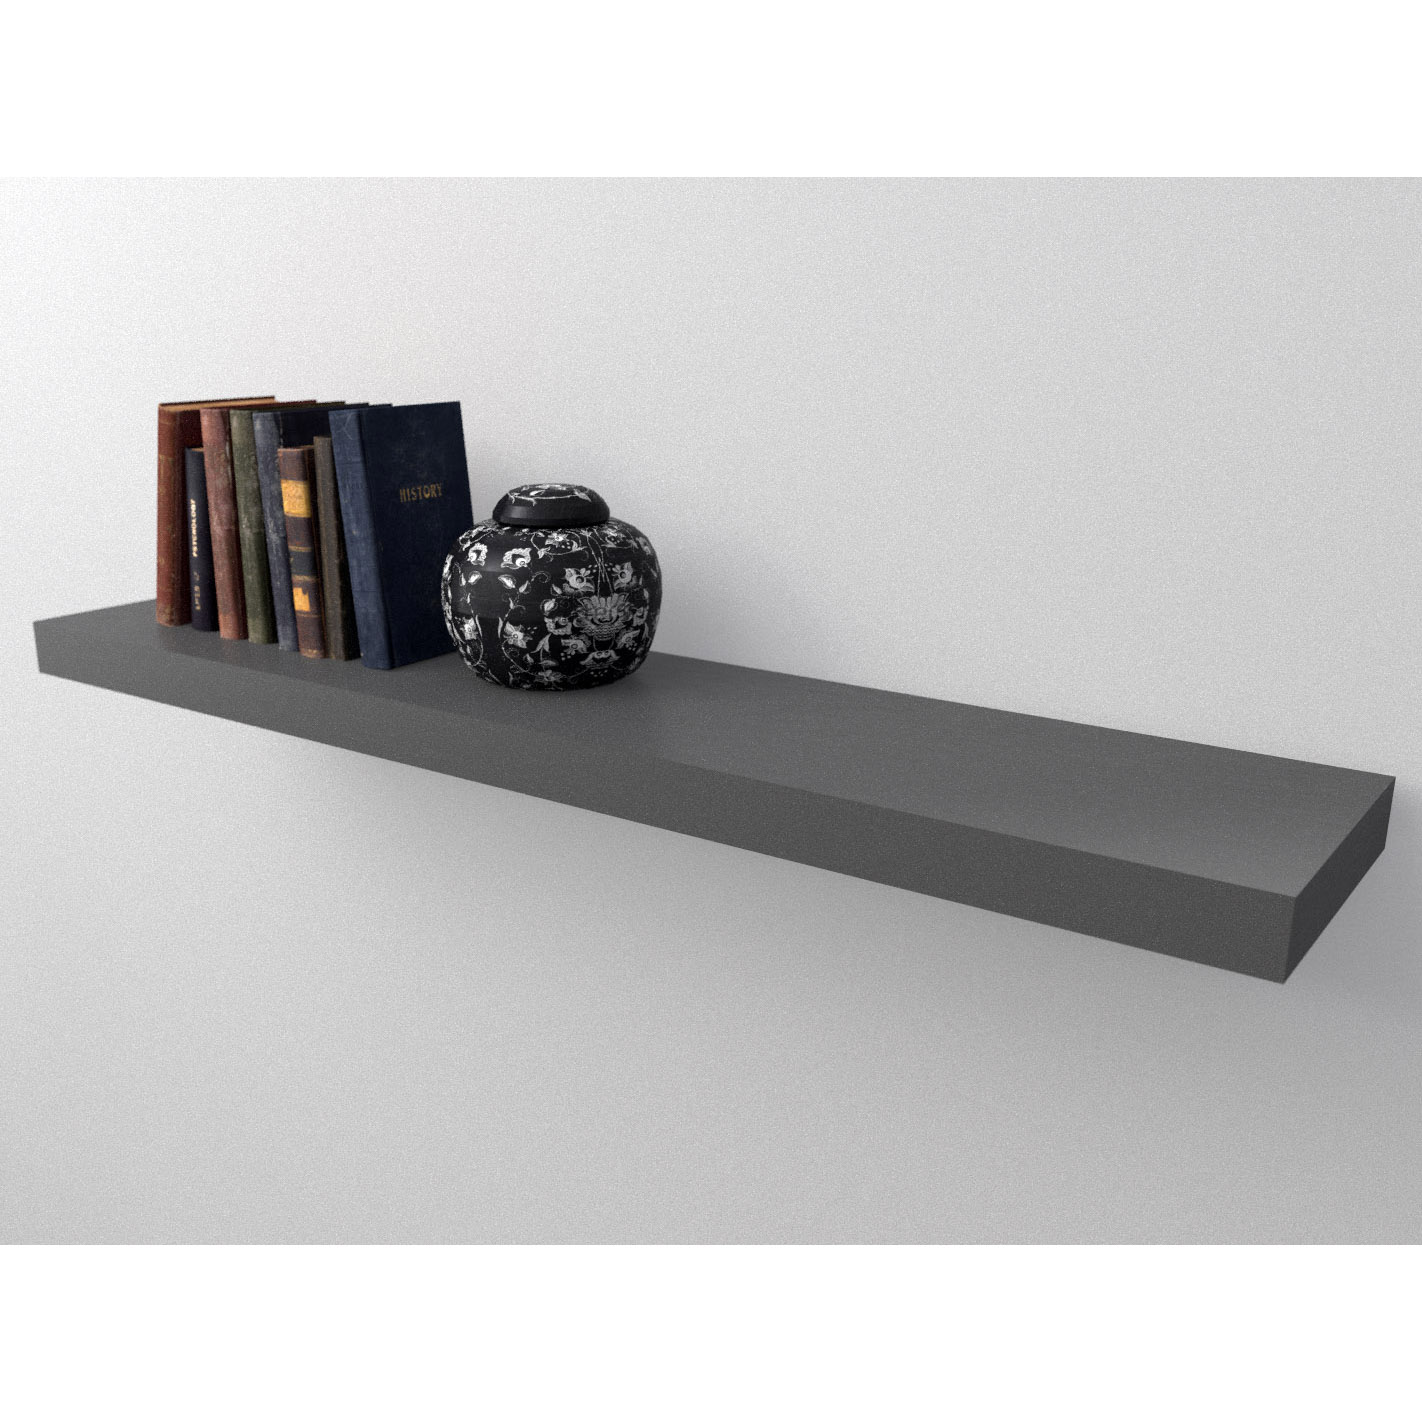 gray wall shelf pmpresssecretariat stone grey floating with drawer dark kit mastershelf ikea mudroom ideas diy wood mantel kallax expedit double vanity home entertainment shelves